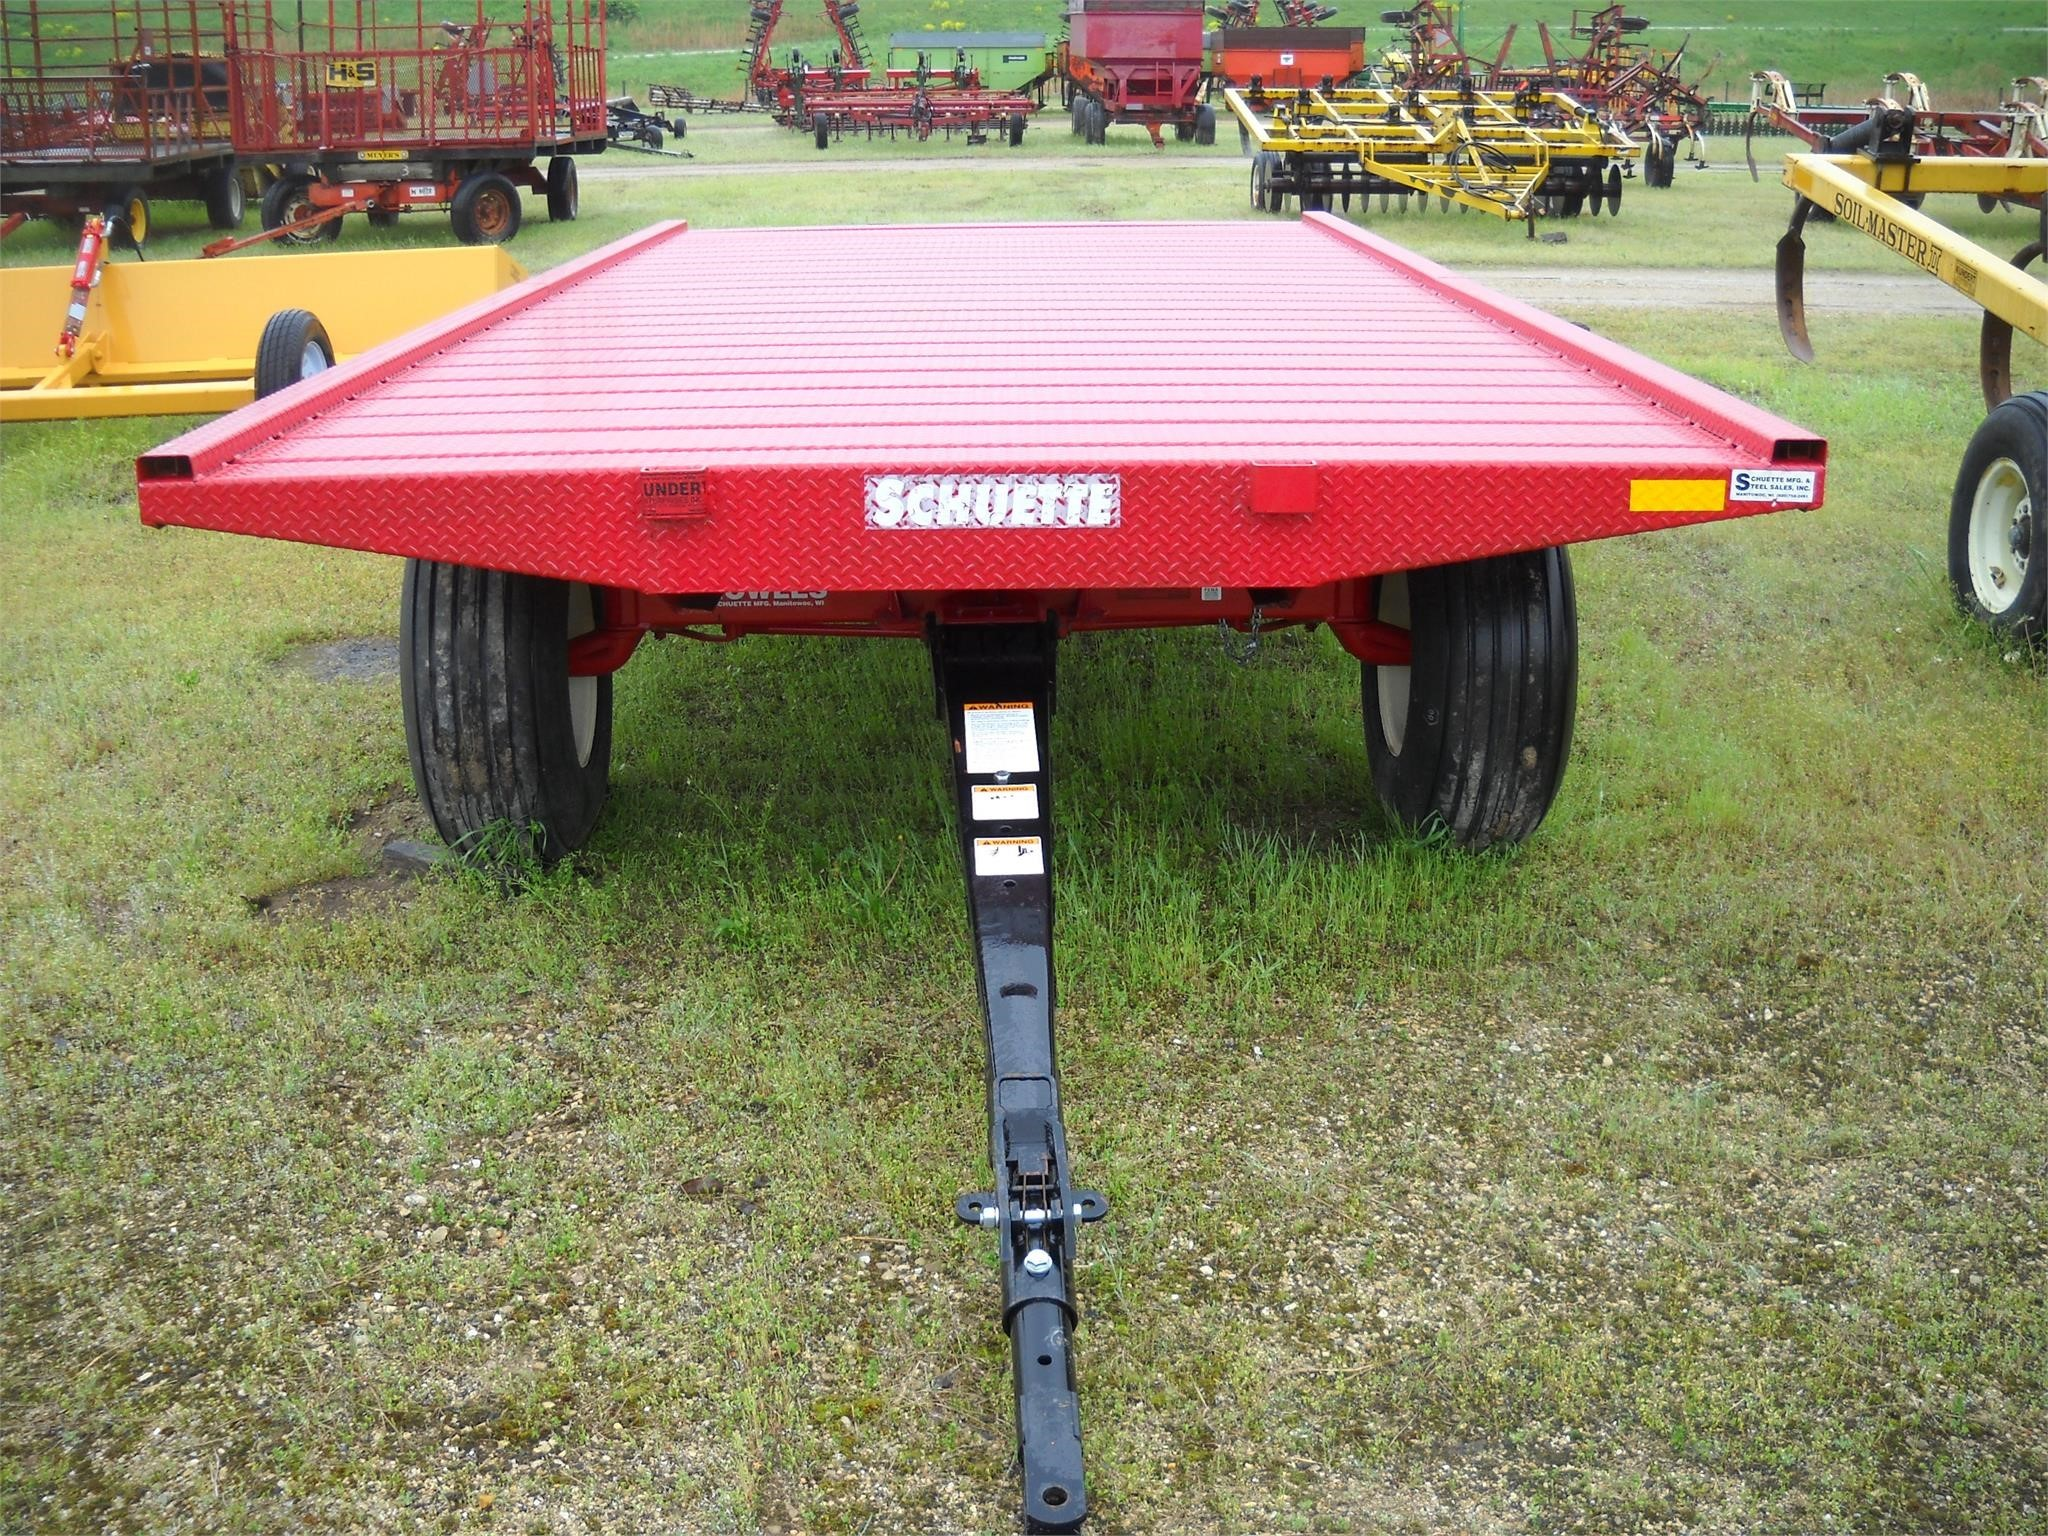 2019 SCHUETTE 20FT Bale Wagons and Trailer